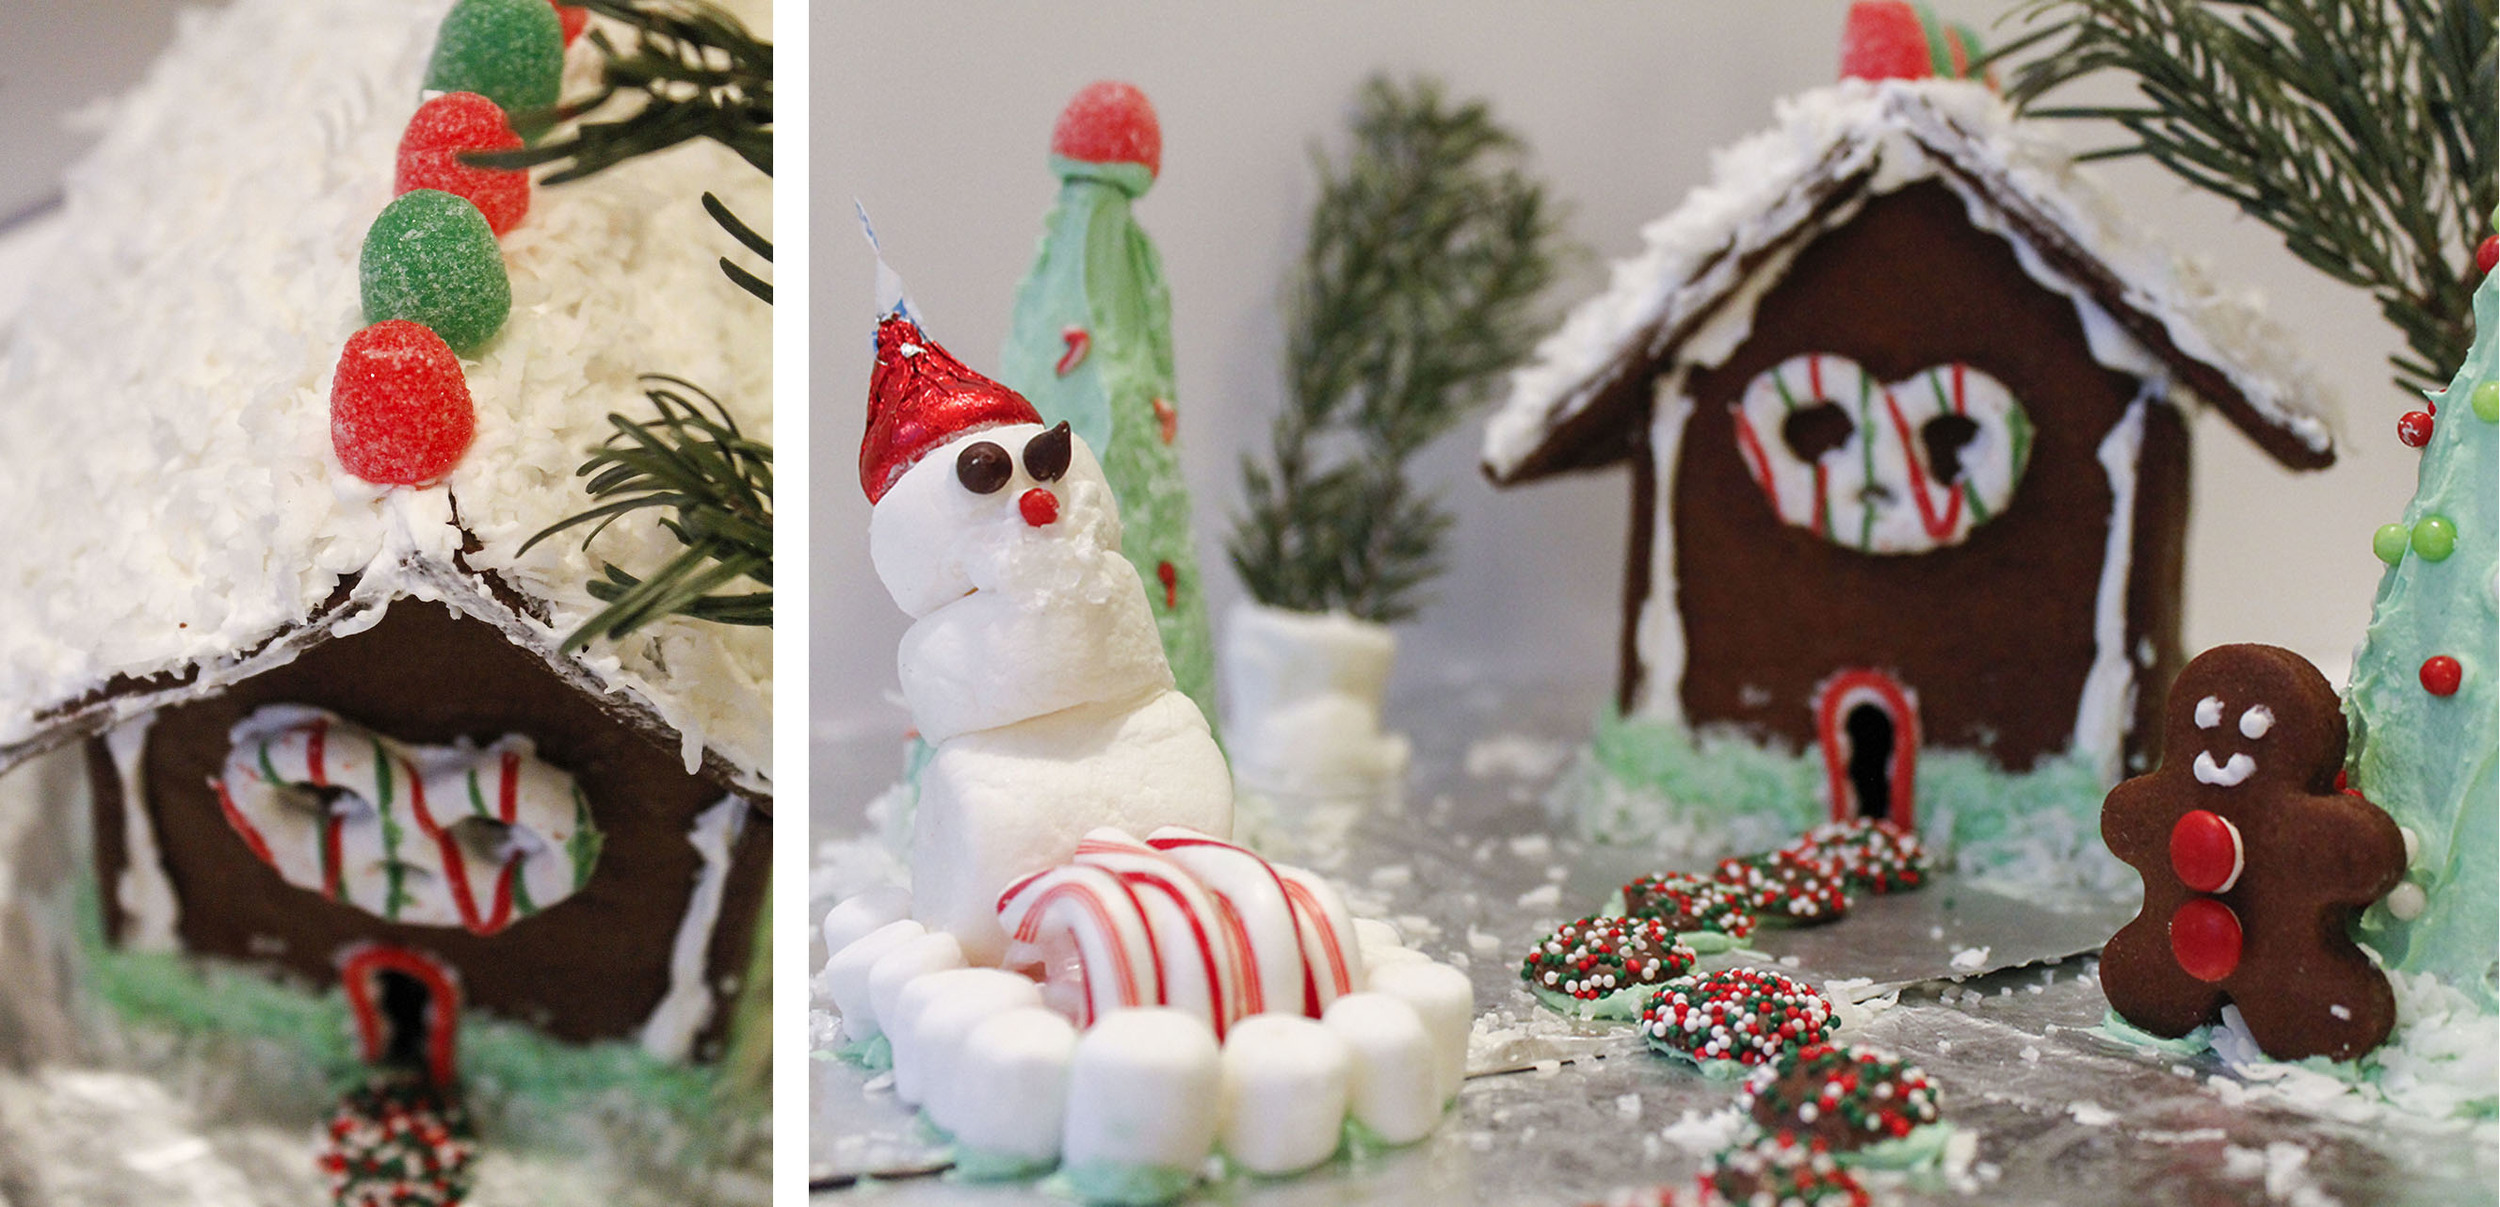 Here's my snowy gingerbreadhouse, featuringSanta Snowman on his sleigh and Gingerbread Boy.